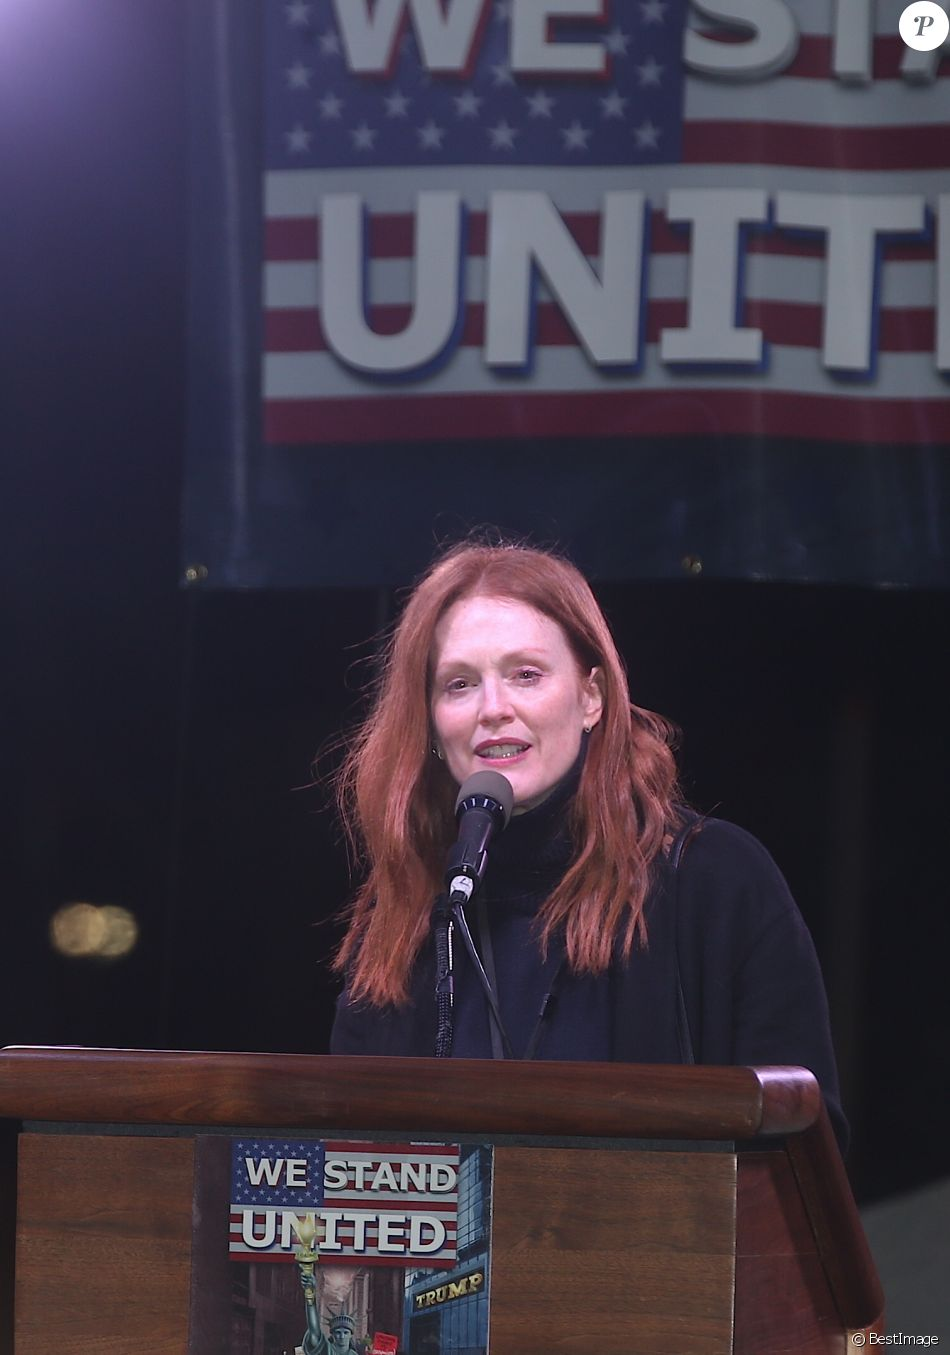 "Julianne Moore à la tribune lors du rassemblement anti-Trump ""We Stand United"" devant le Trump International Hotel & Tower à New York, le 19 janvier 2017."